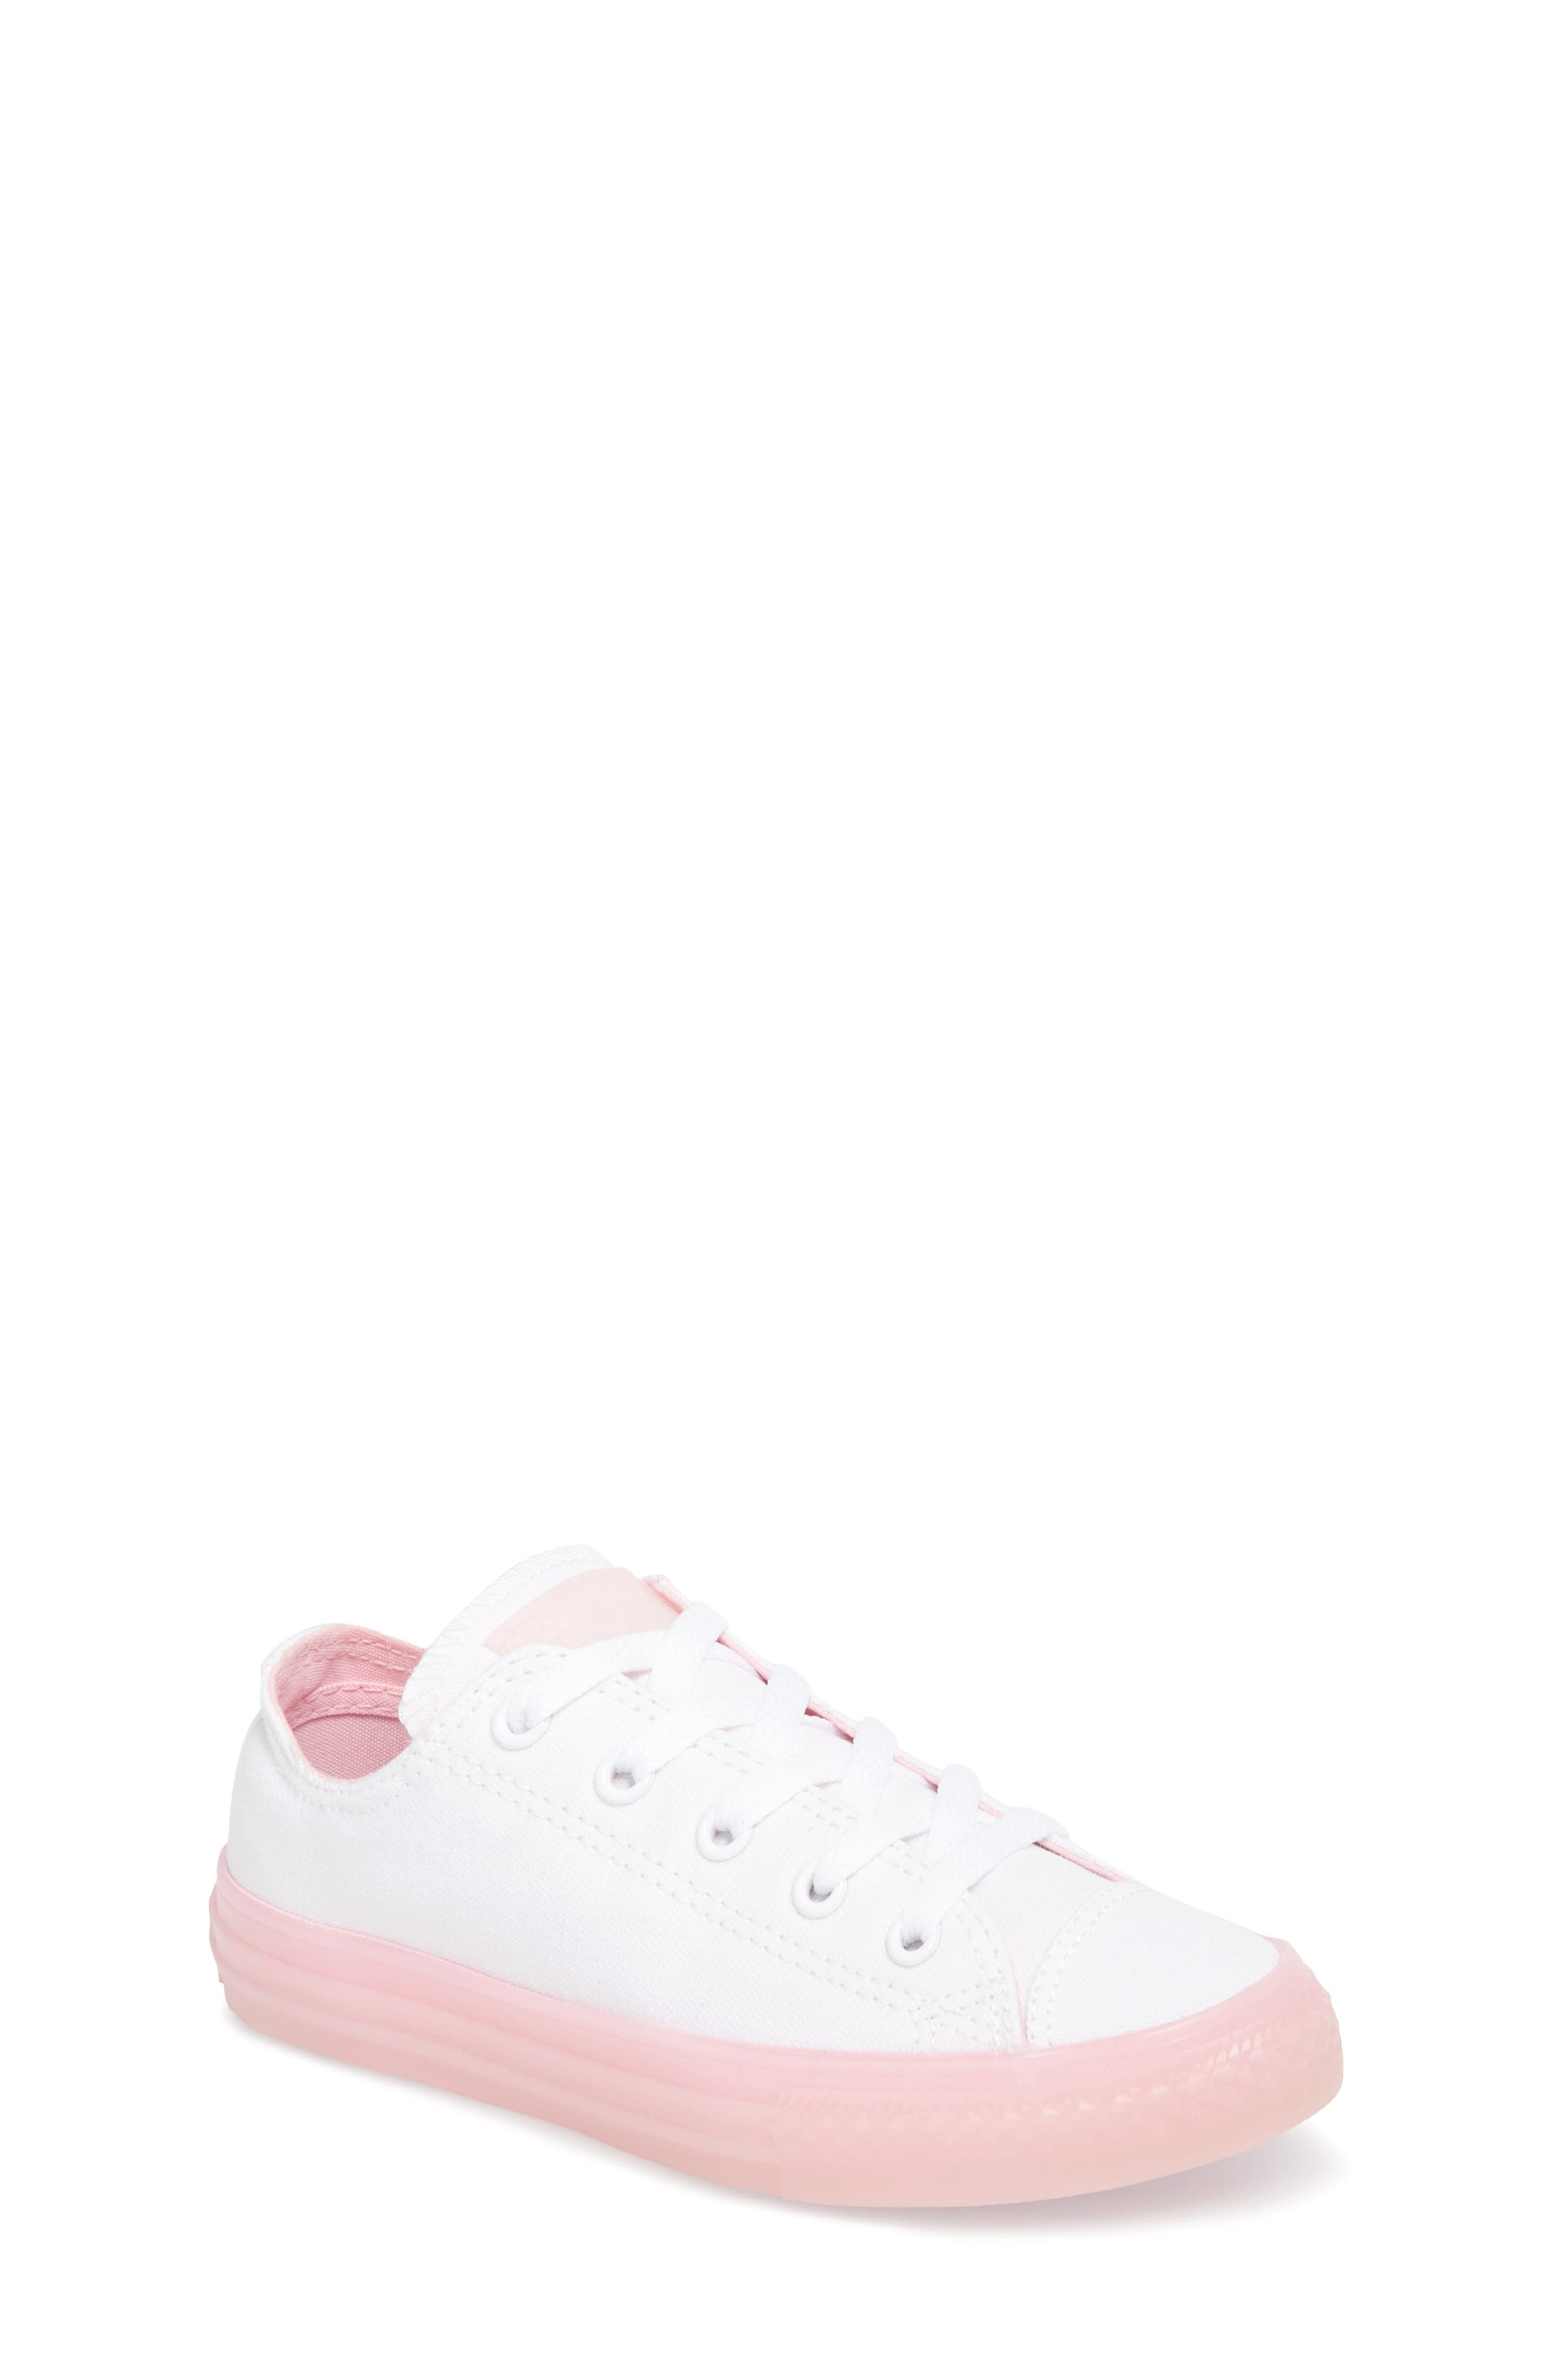 Chuck Taylor<sup>®</sup> All Star<sup>®</sup> Jelly Low Top Sneaker,                             Main thumbnail 1, color,                             WHITE/ CHERRY